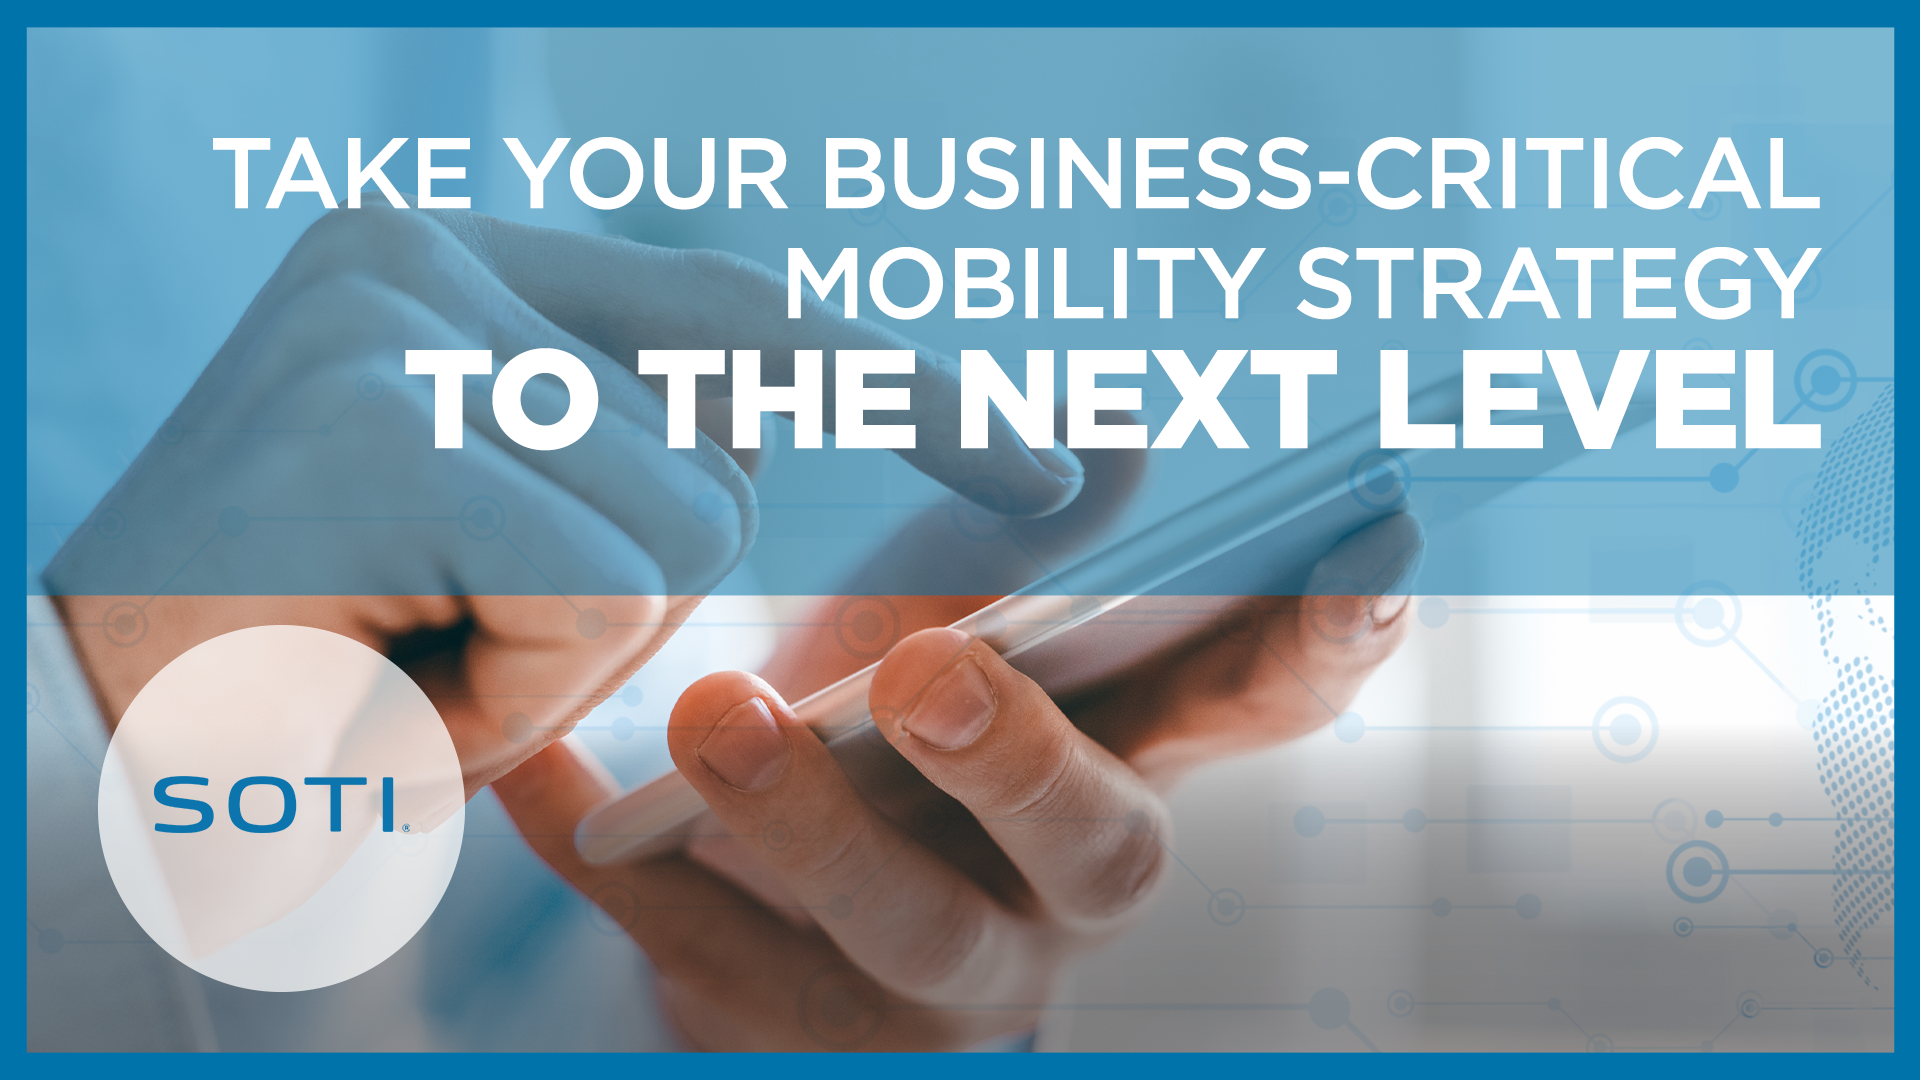 SOTI ONE Platform Takes Your Business-Critical Mobility Strategy to the Next Level